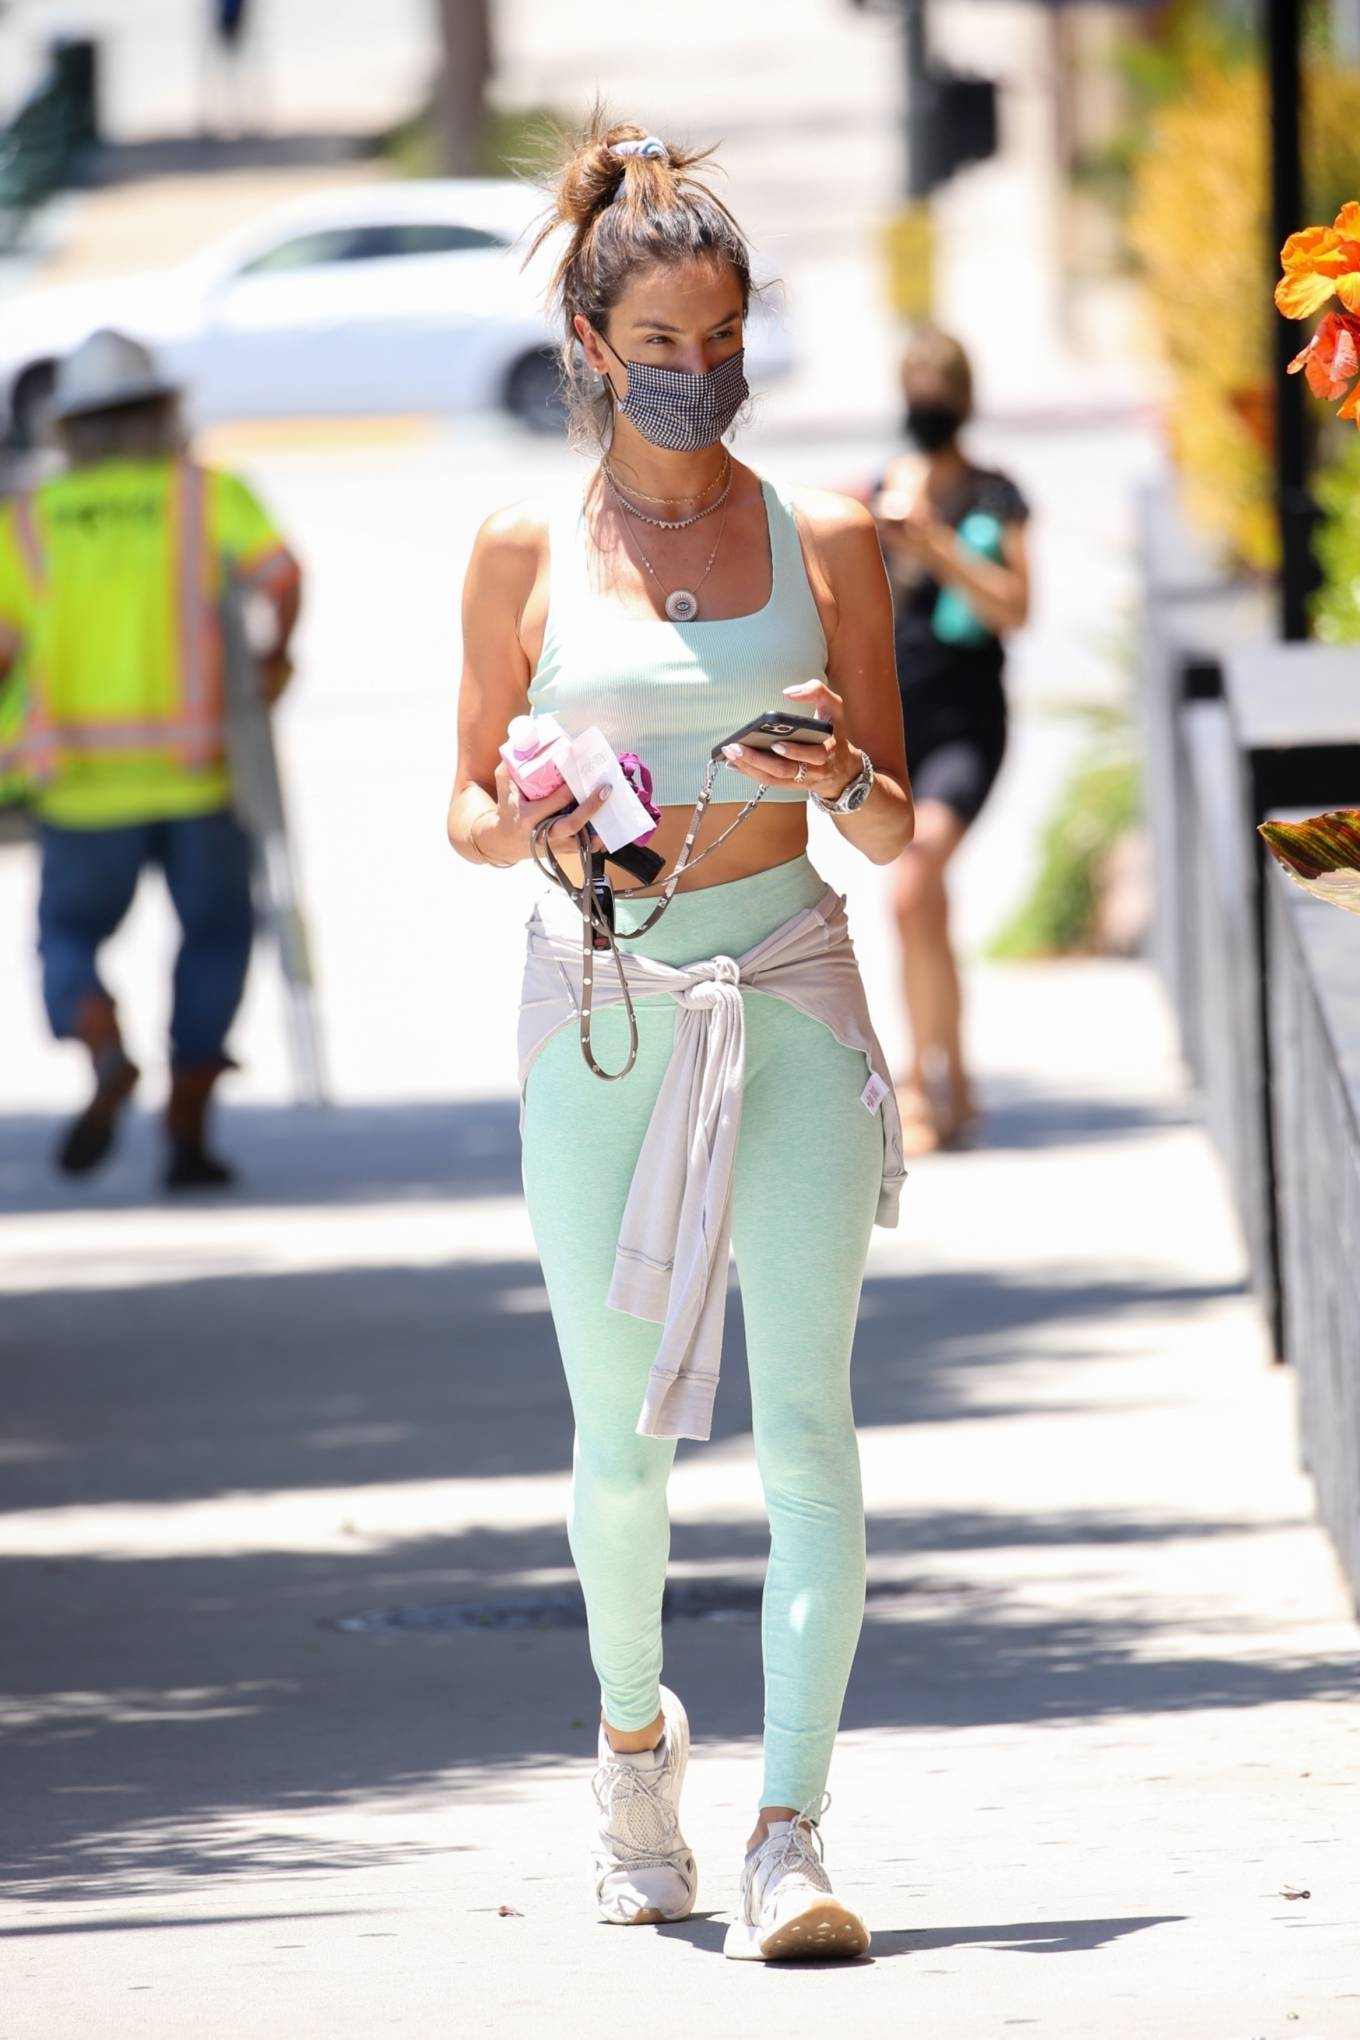 Alessandra Ambrosio donning round white grey lace-up sneakers with flat heel